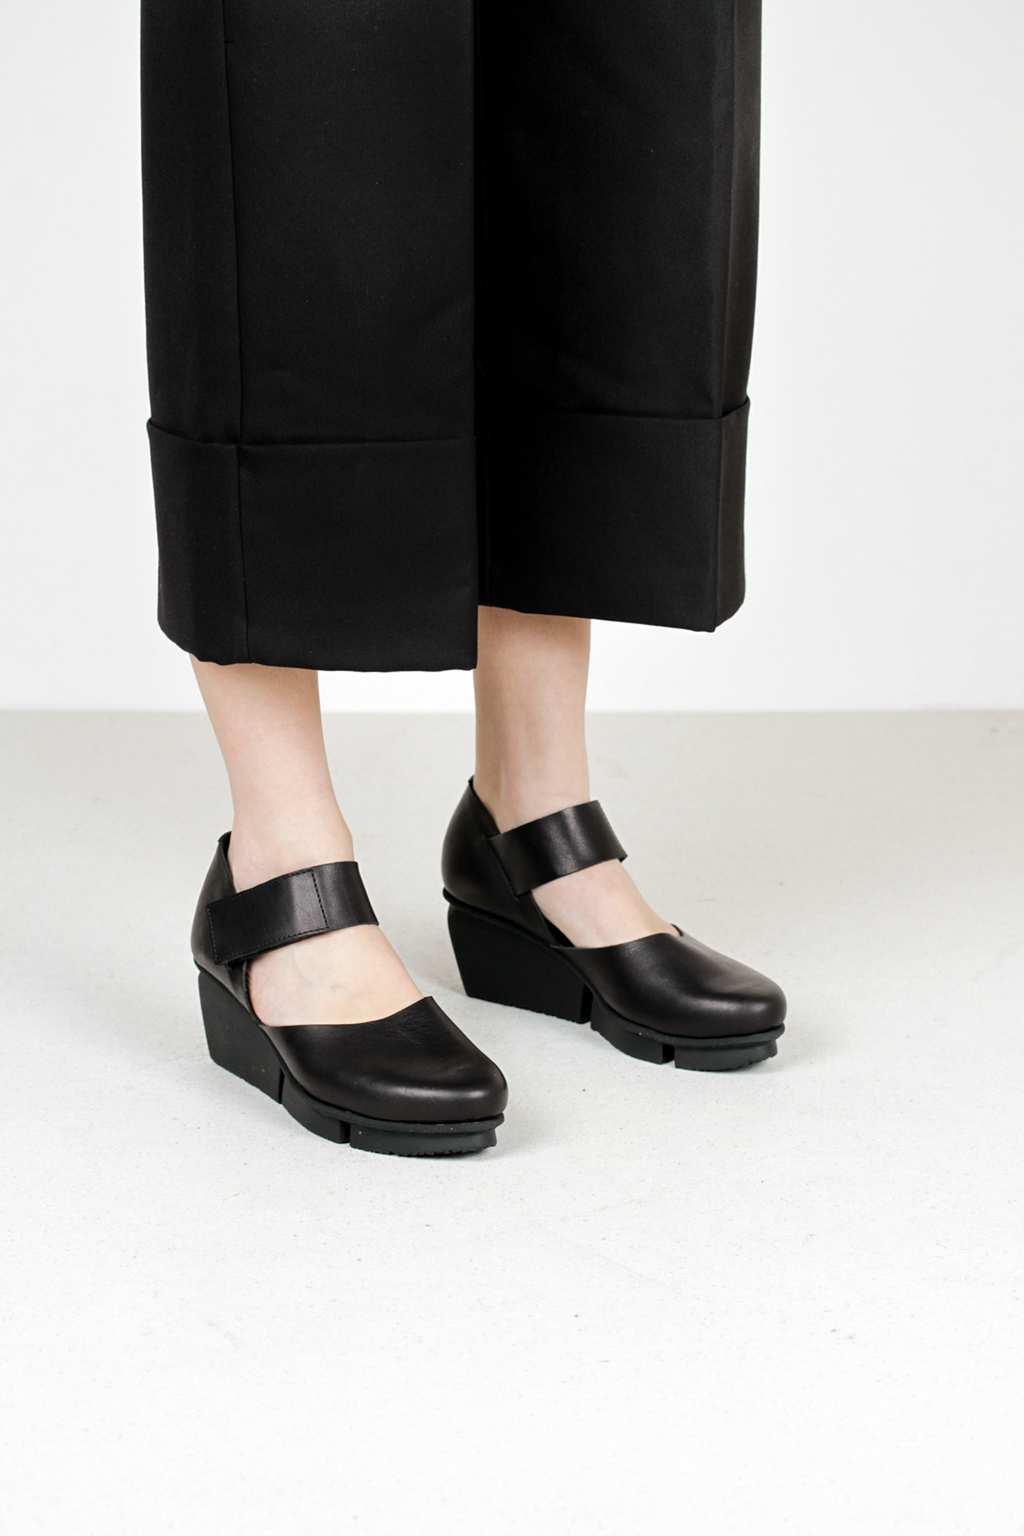 Trippen hostess f waw blk leather shoes